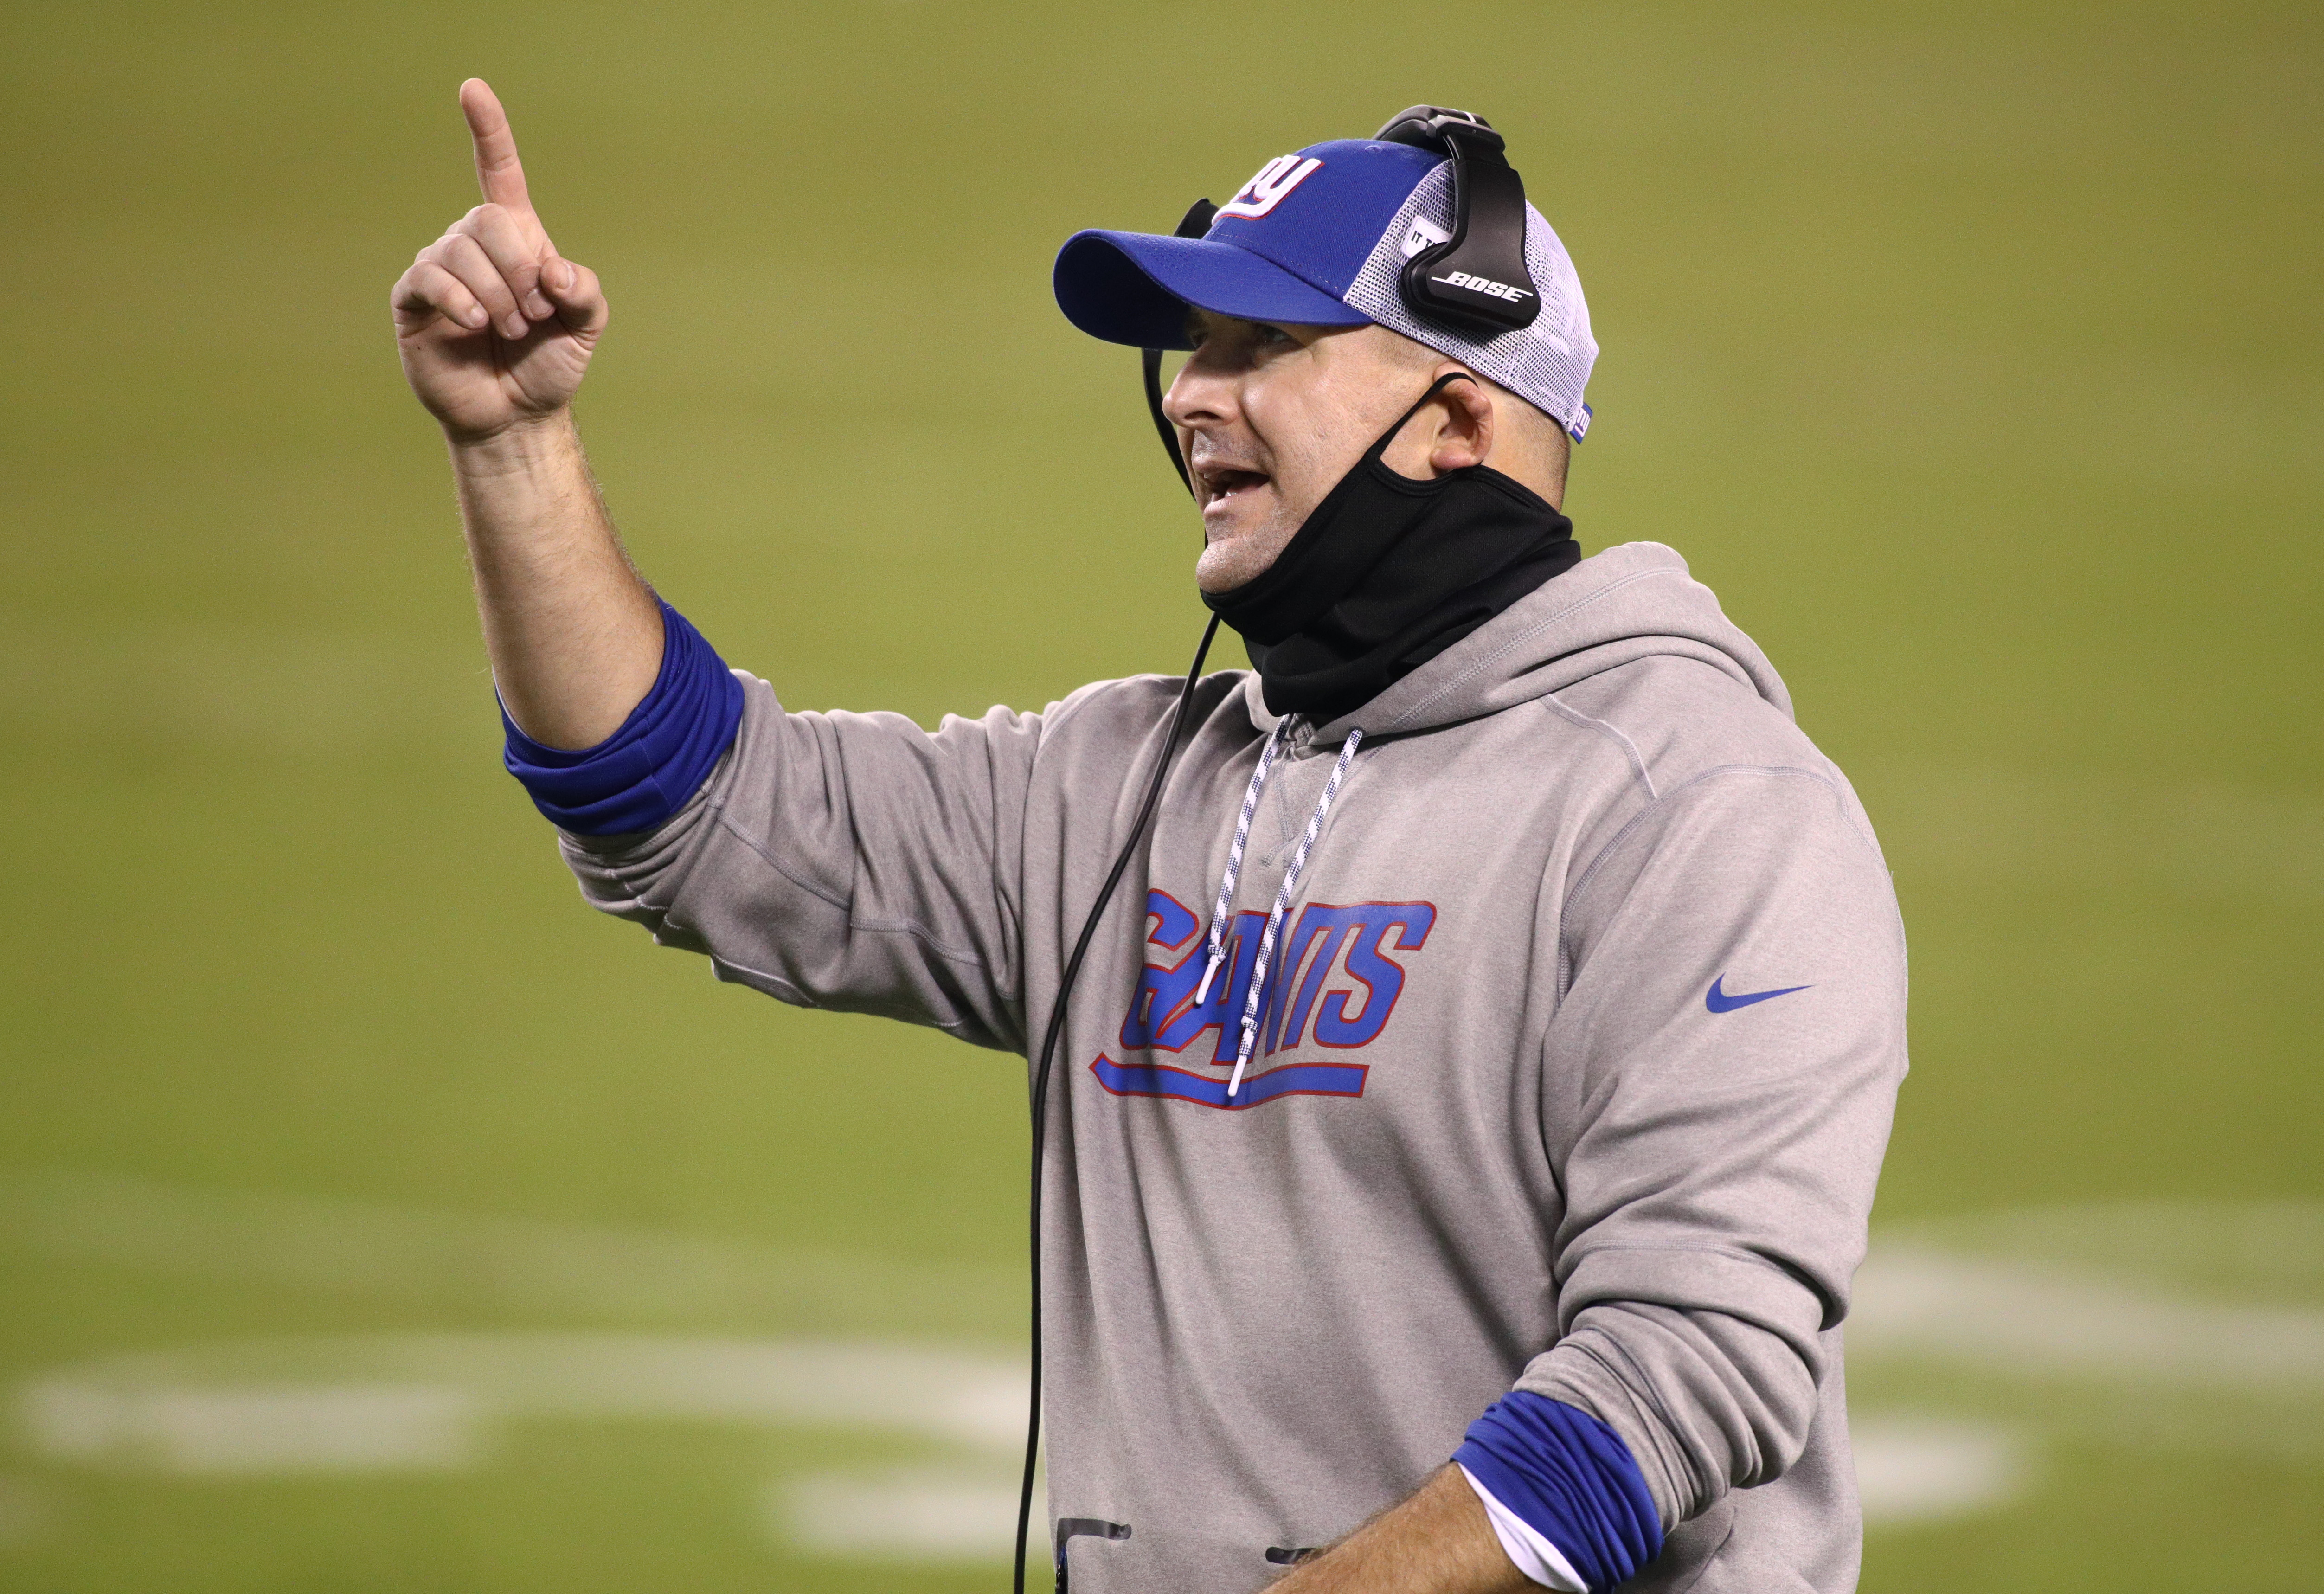 Giants Coach Joe Judge Would Have Made the WWE Proud During a Fight in College